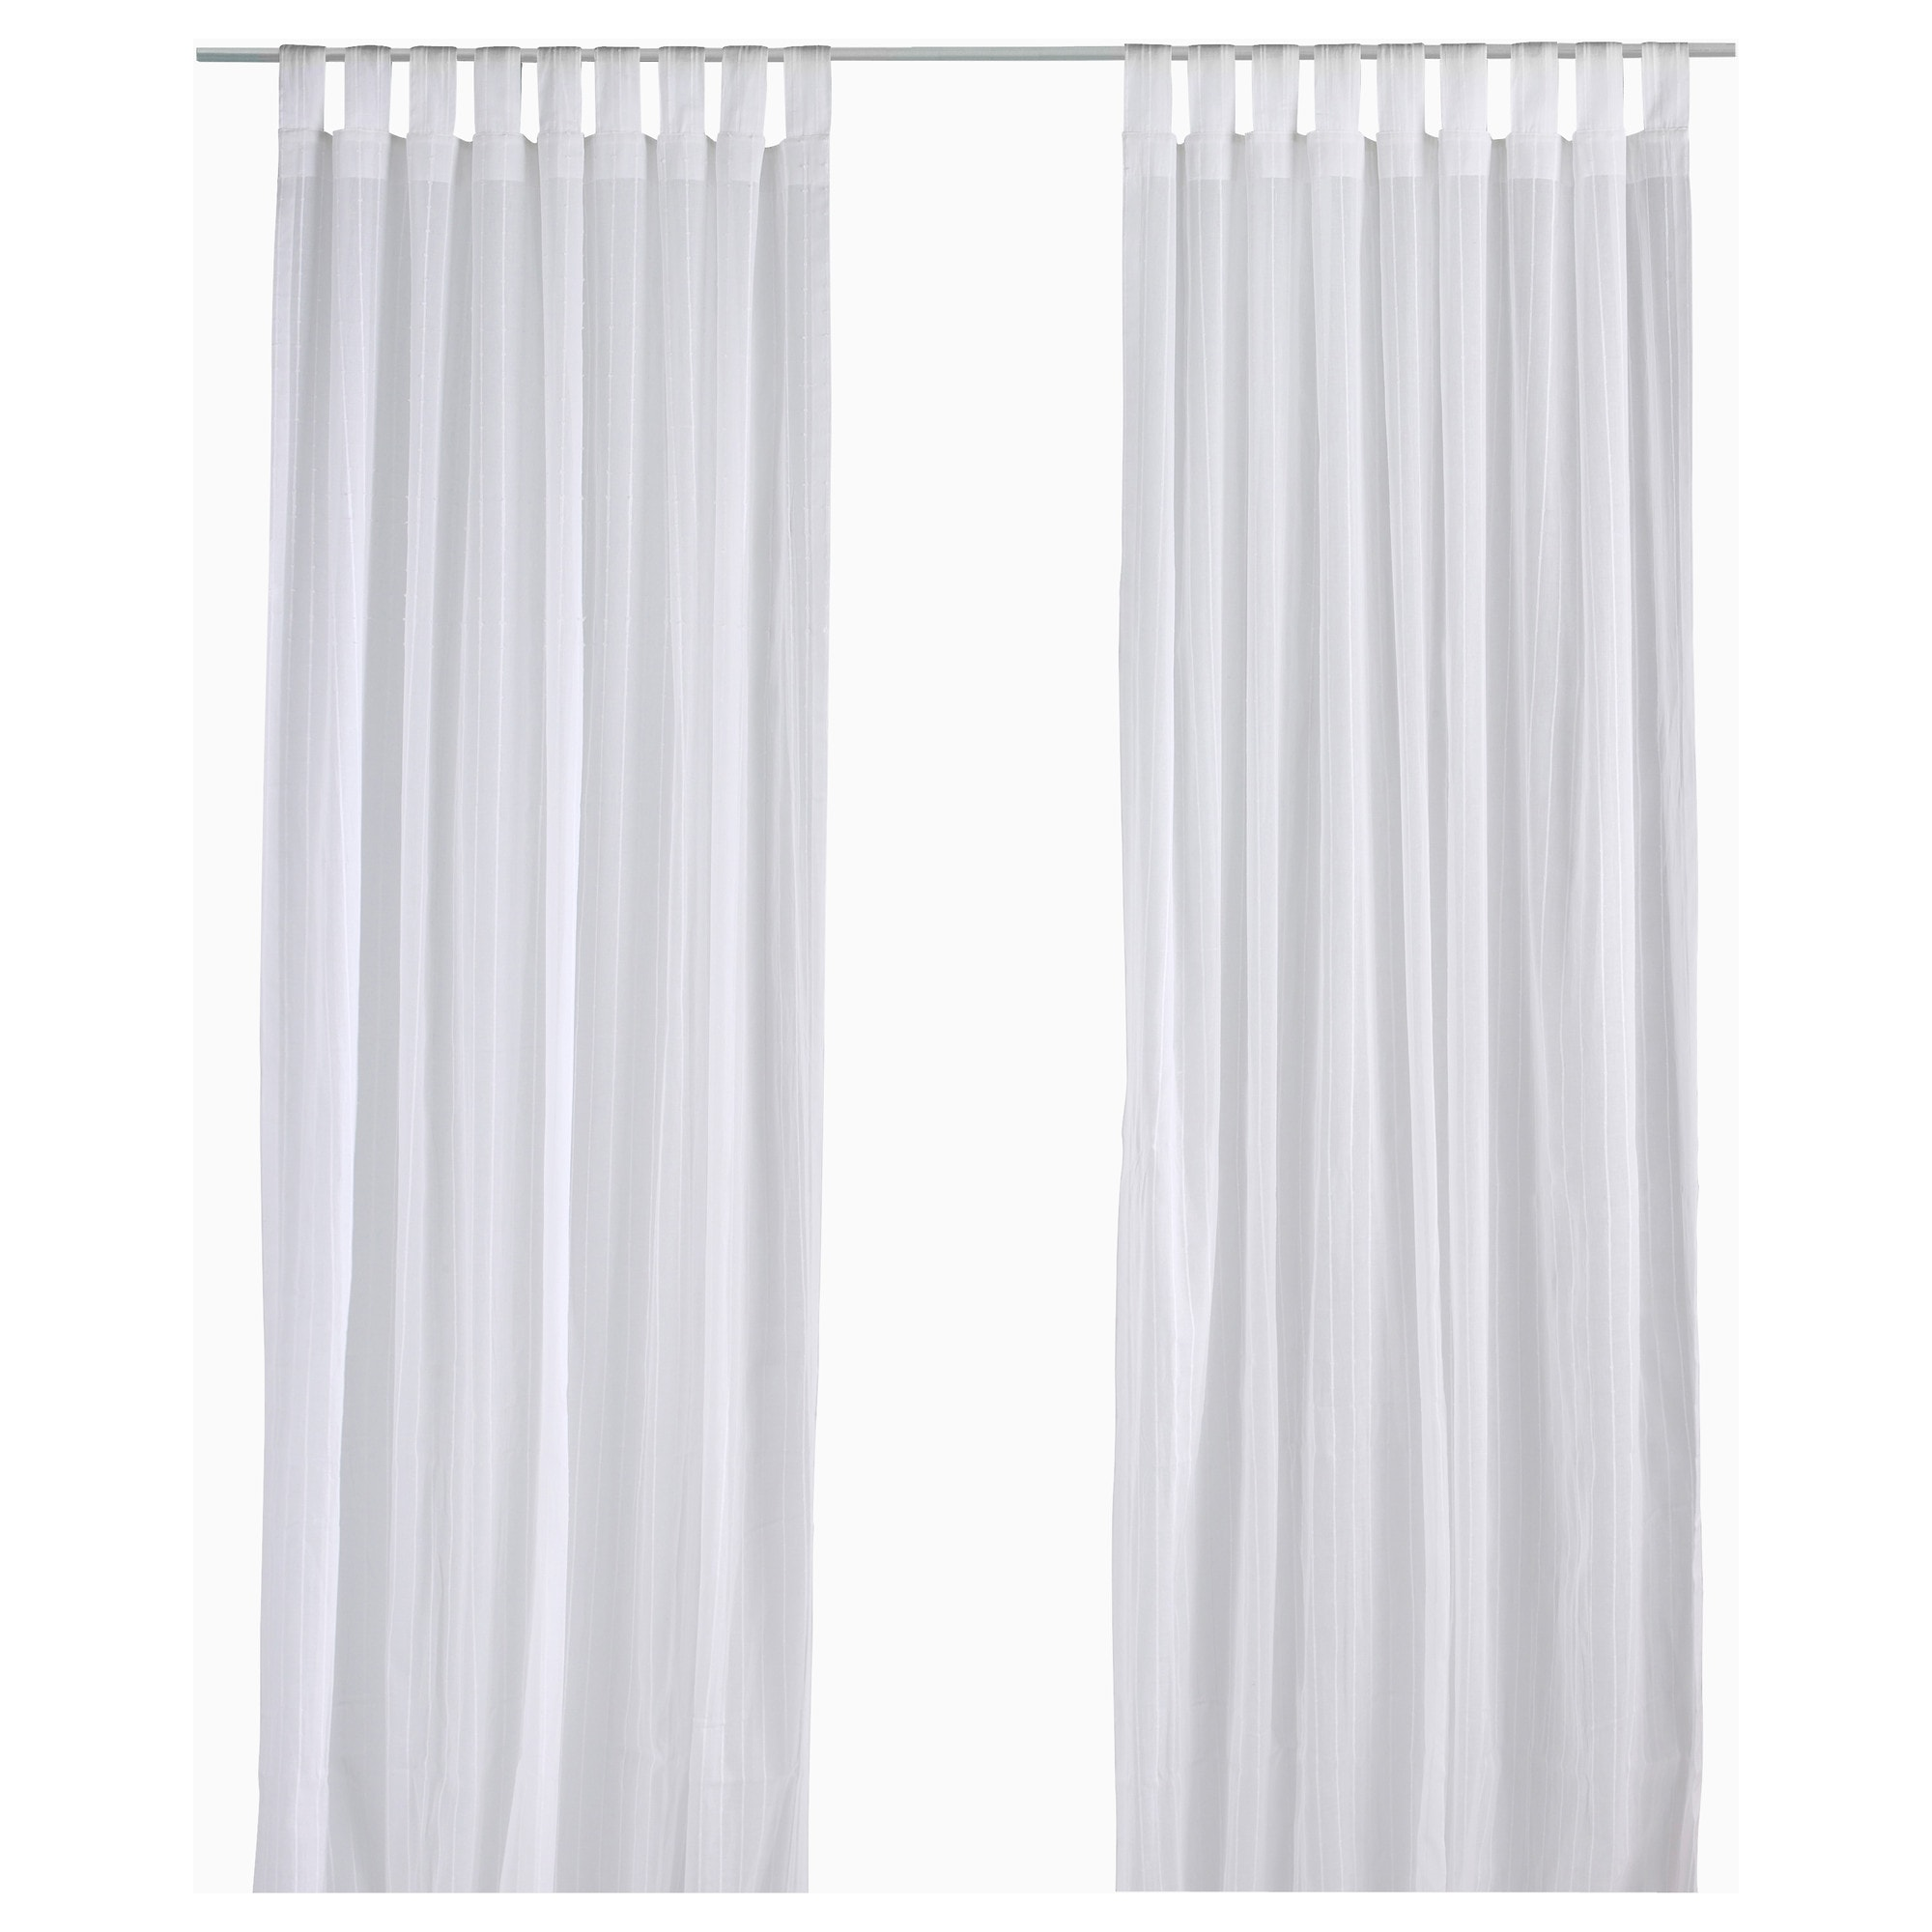 White curtains bedroom - White Curtains Bedroom